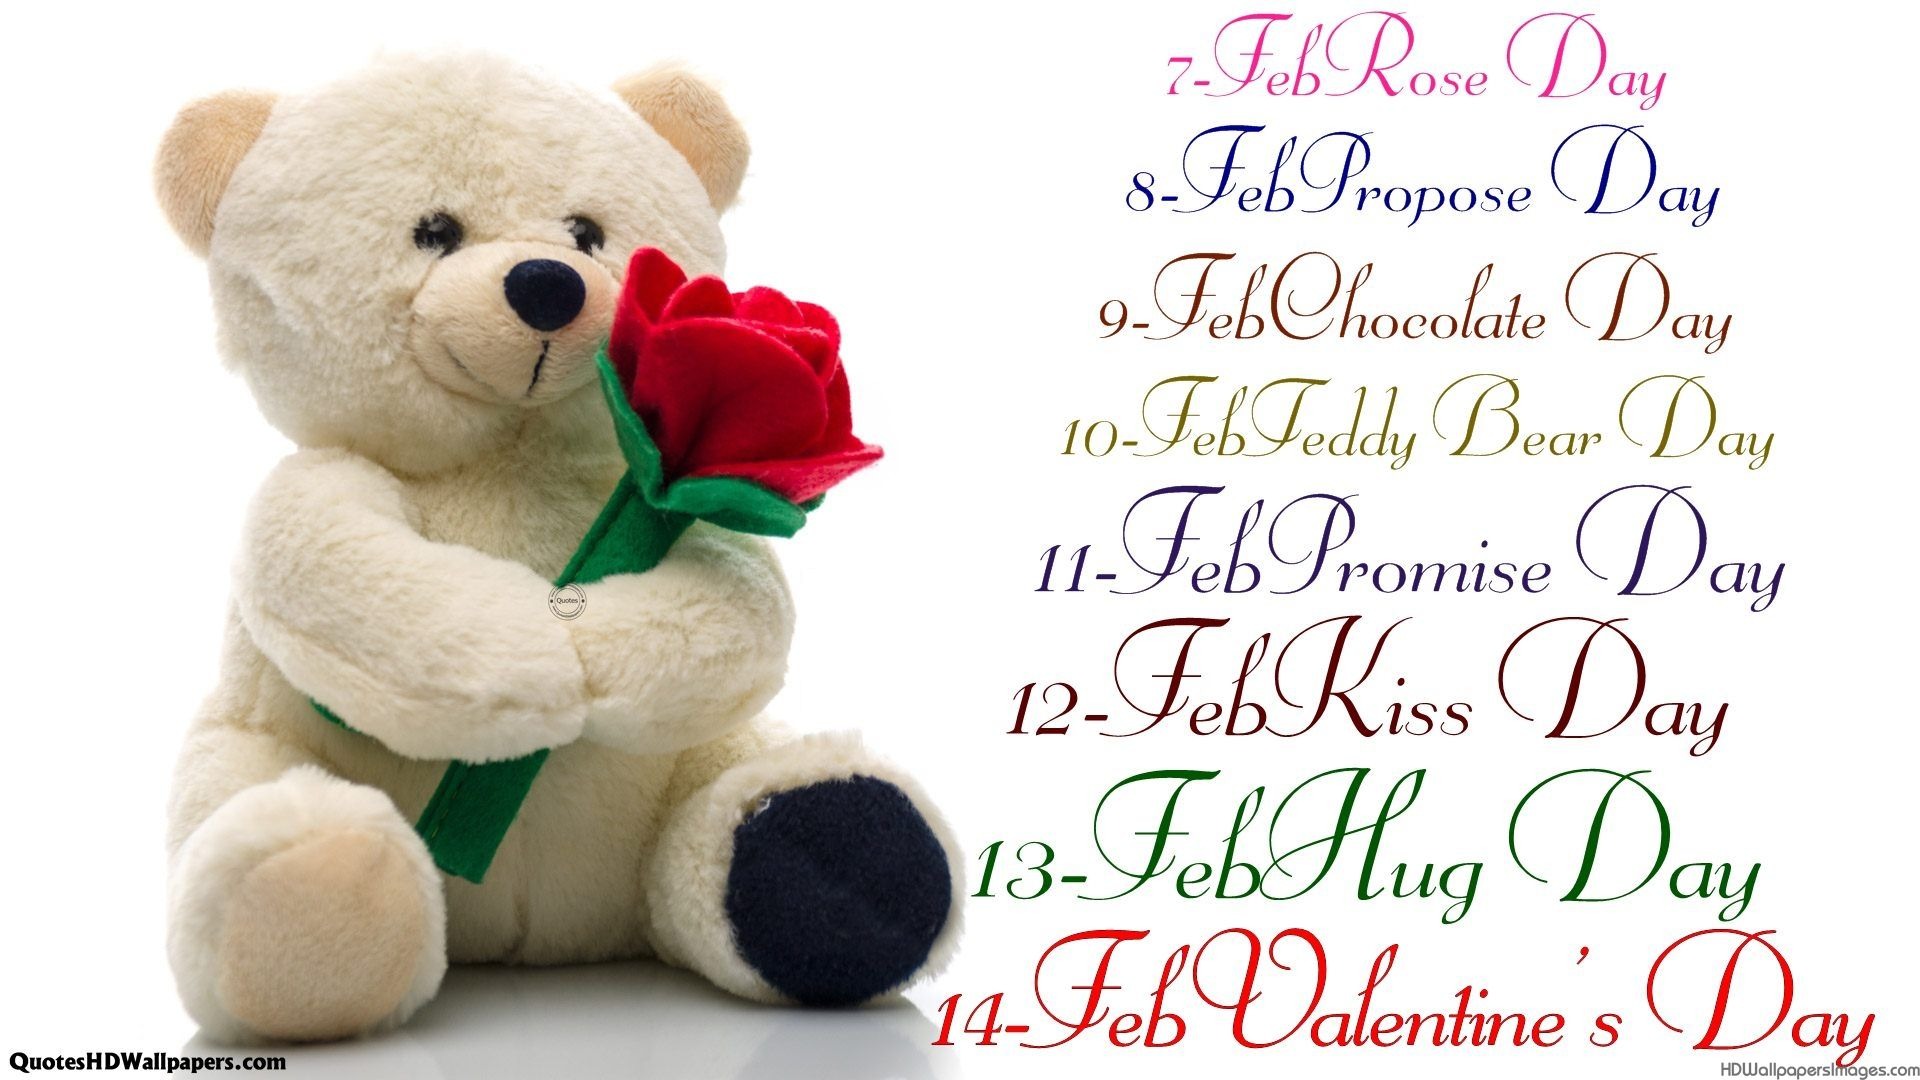 download happy valentines day date chart, week list events, 2015download happy valentines day date chart, week list events, 2015 images, pictures, wallpapers, photos, pics, scraps, fb cover, greetings, 14 feb quotes